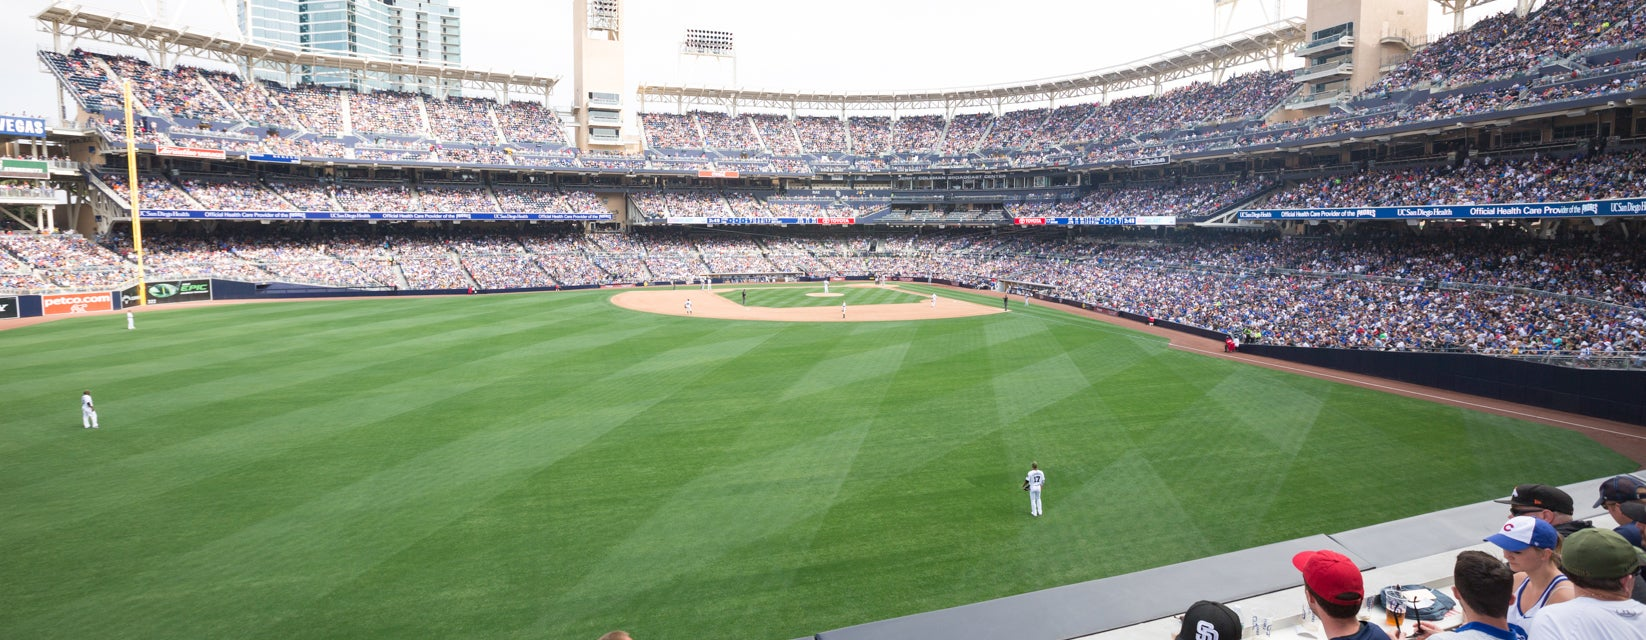 Seat view from LF Reserved